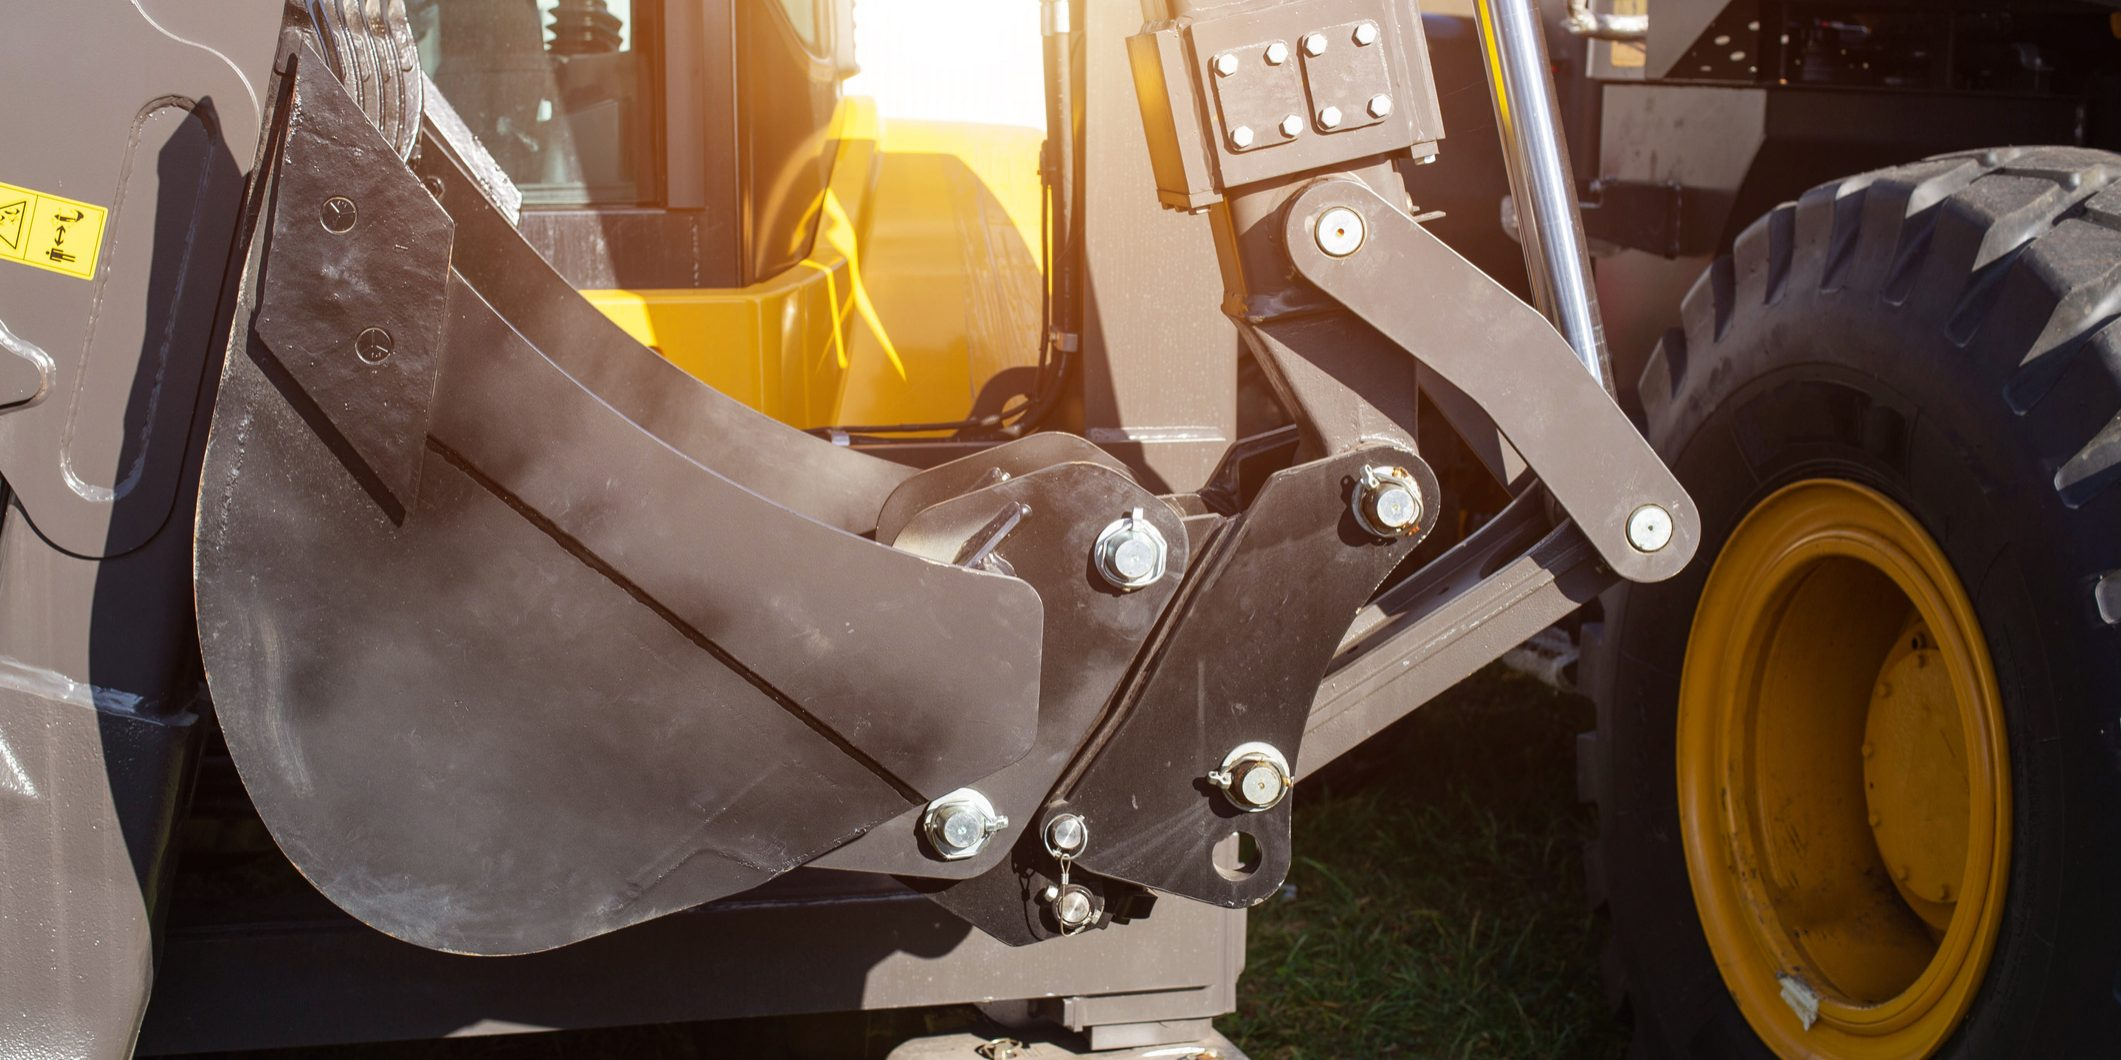 Hydraulic mechanism on construction equipment for driving a bucket on an excavator, industry